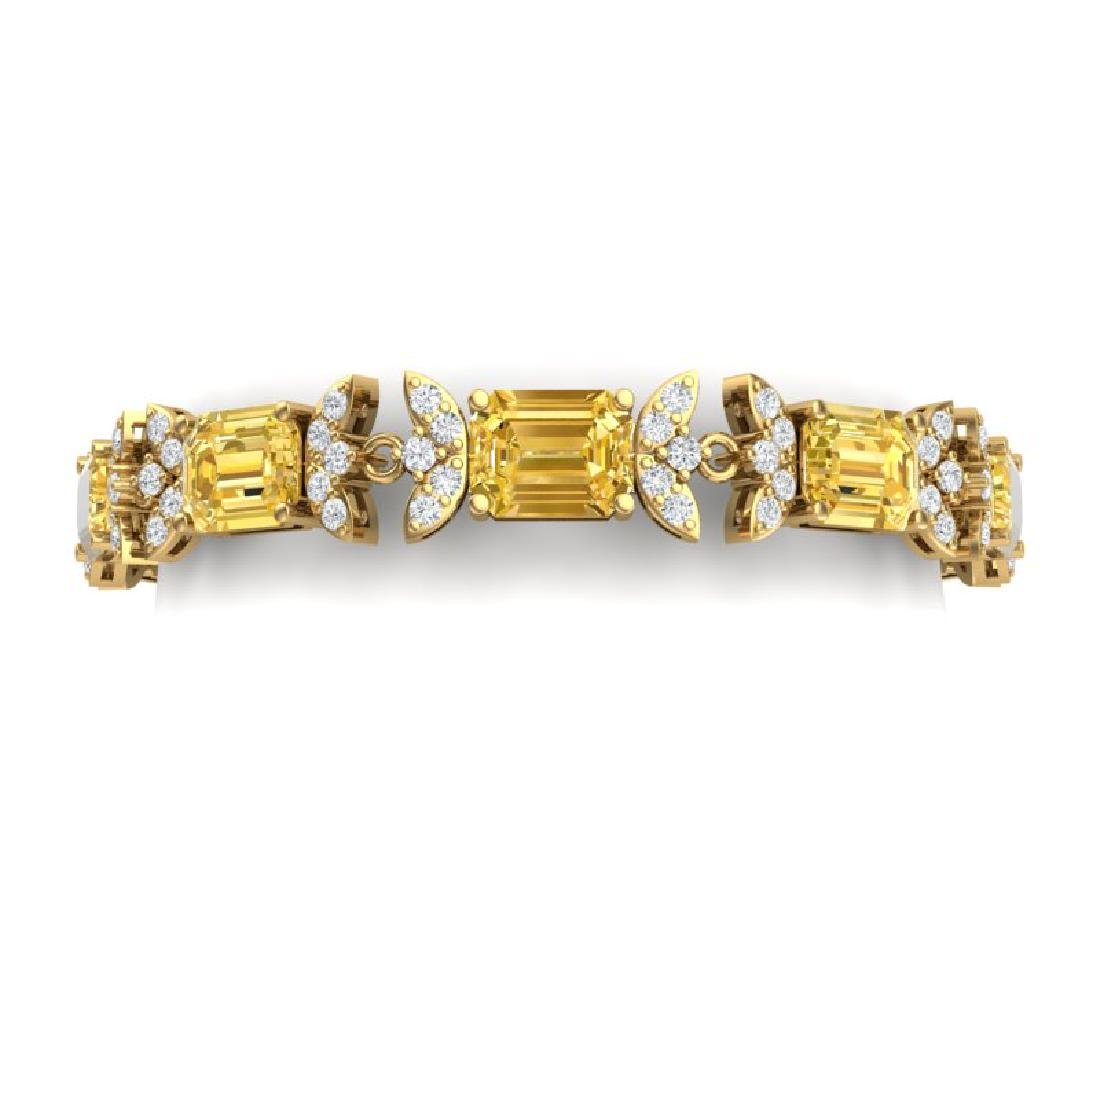 35.21 CTW Royalty Canary Citrine & VS Diamond Bracelet